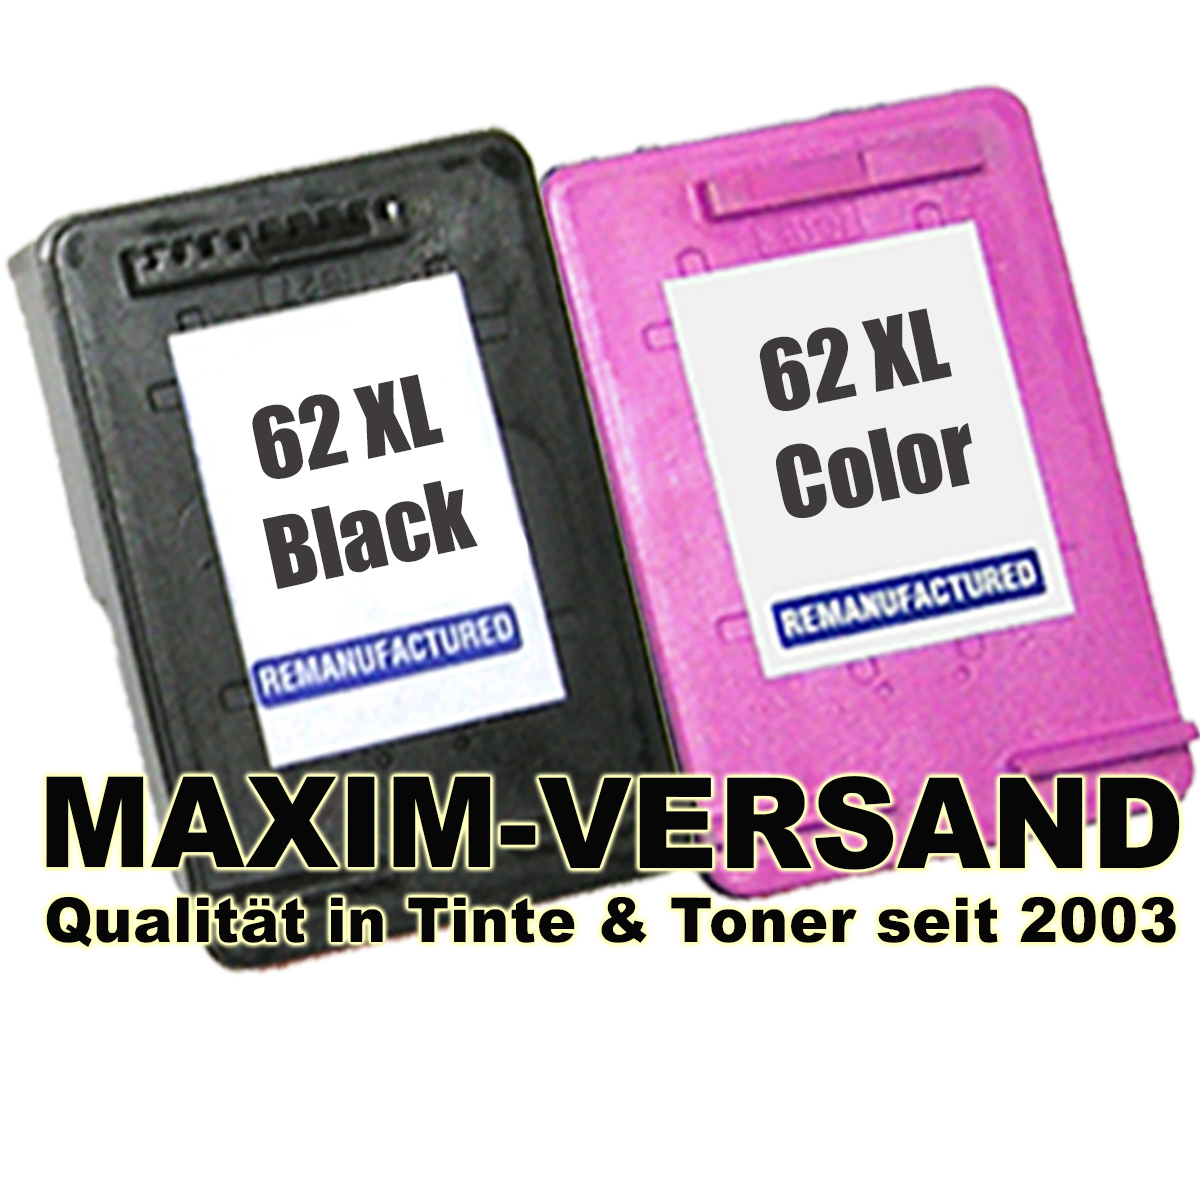 Patronen für HP 62 XL Black + HP 62 XL Color - kompatibel (2er Set)